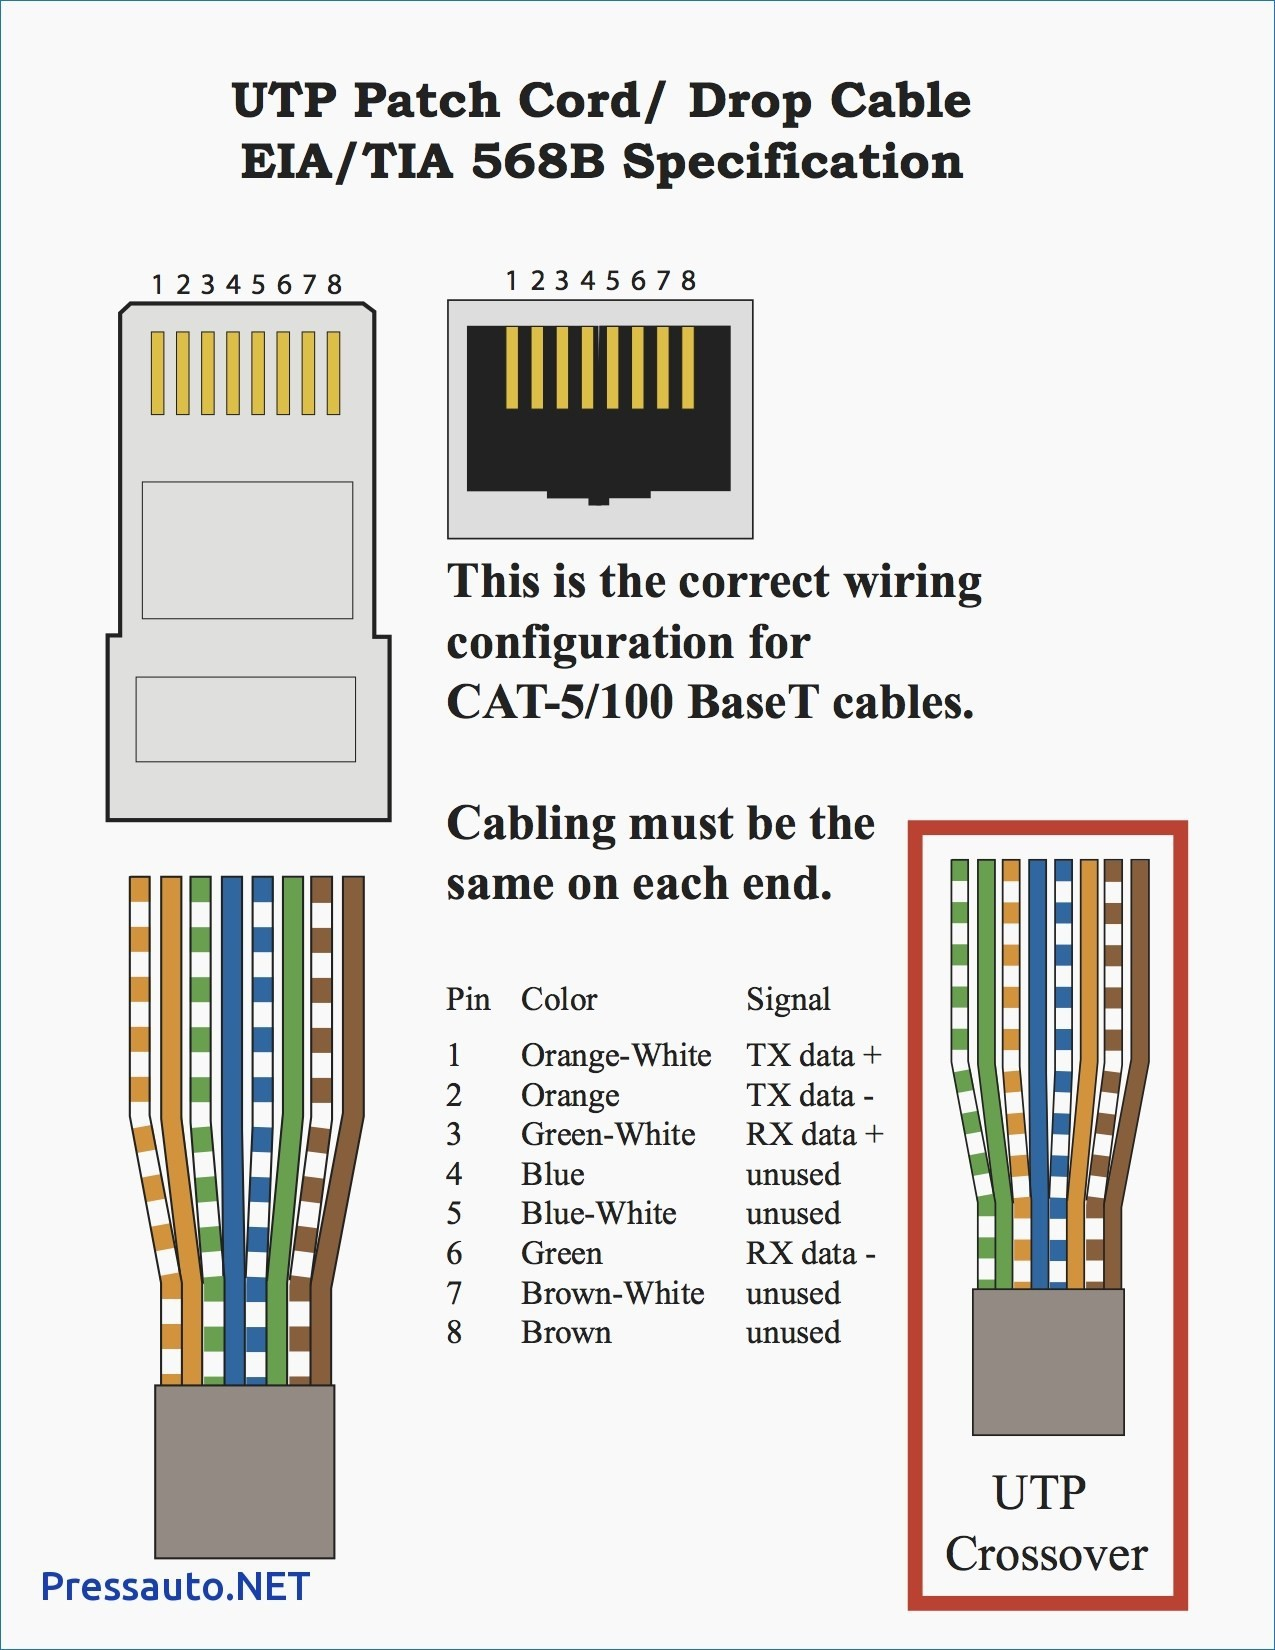 Cat 6 wiring diagram 691 diy wiring diagrams hdmi to cat 6 wiring diagram electrical drawing wiring diagram u2022 rh circuitdiagramlabs today cat 3 wiring diagram cat 3 wiring diagram asfbconference2016 Image collections